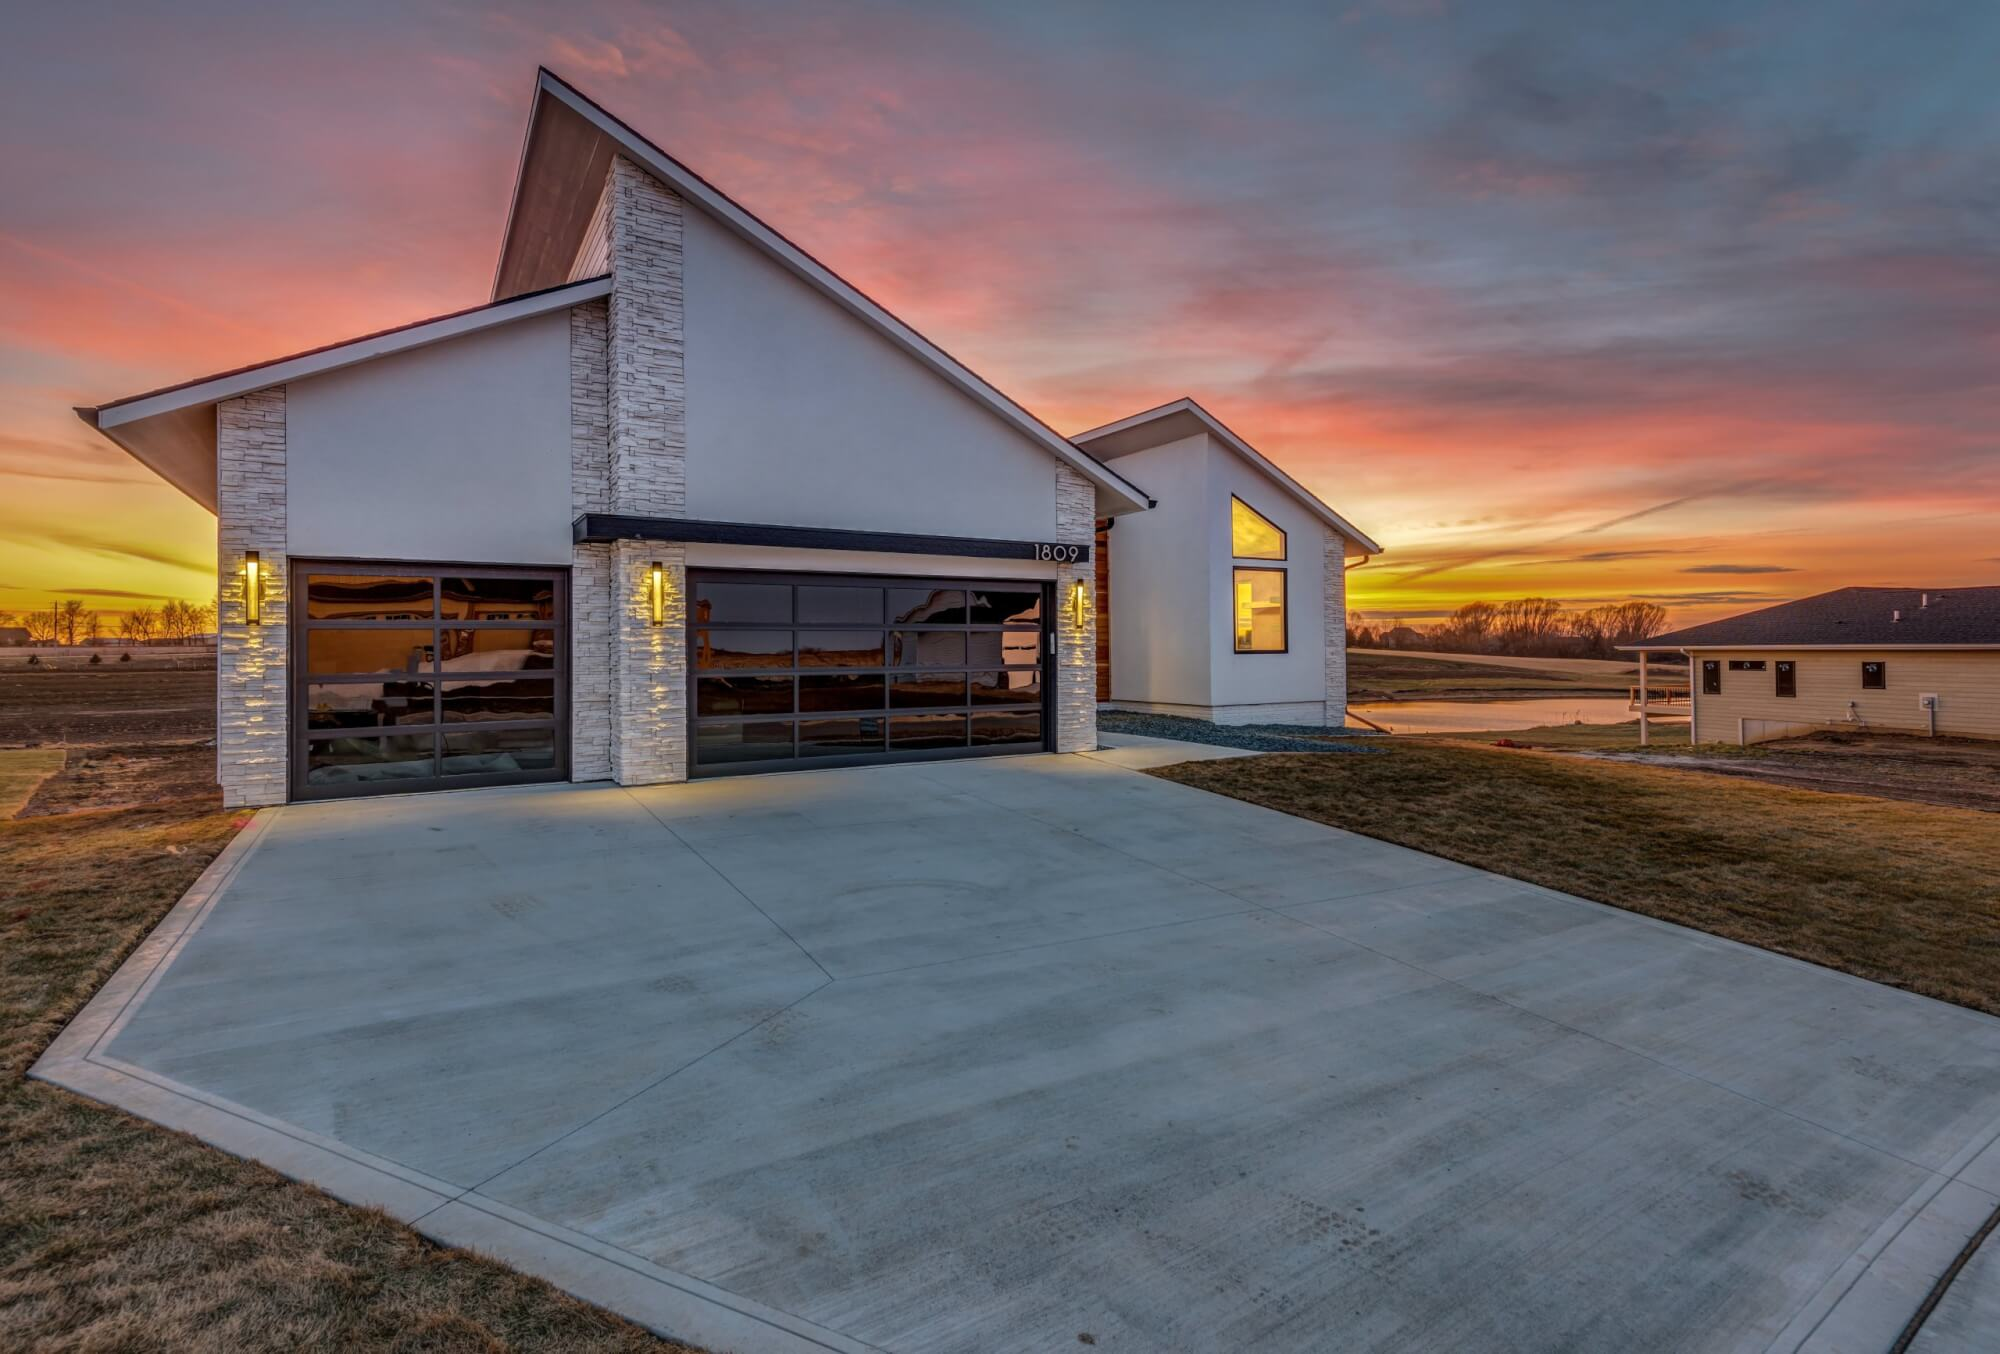 Modern, geometric home built by Kruse Development with the sunset in the background.